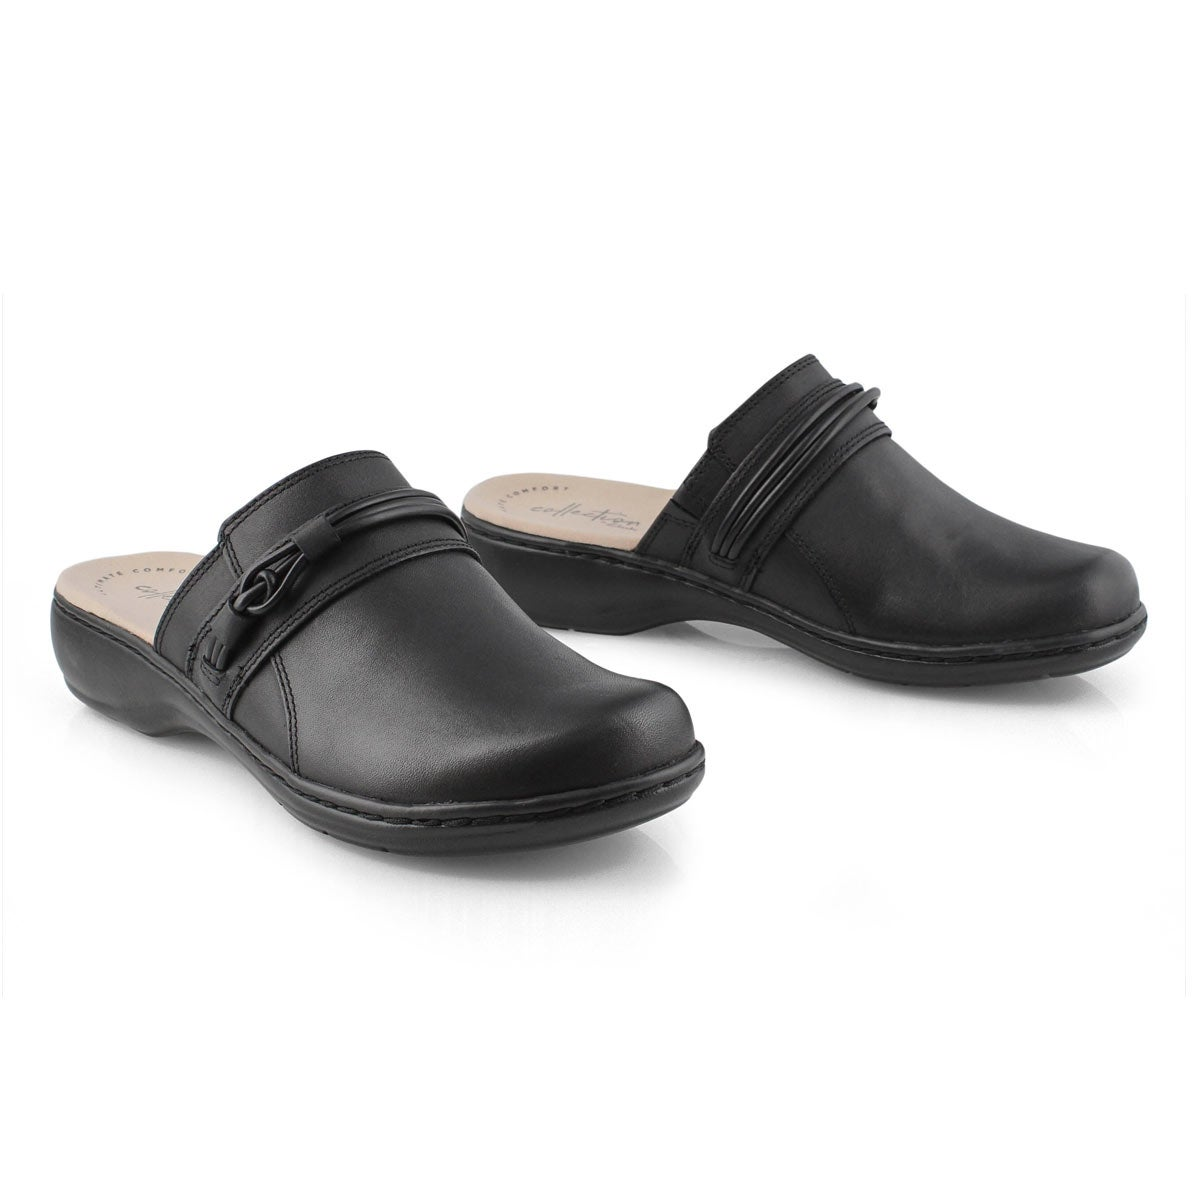 Lds Leisa Clover black casual clog